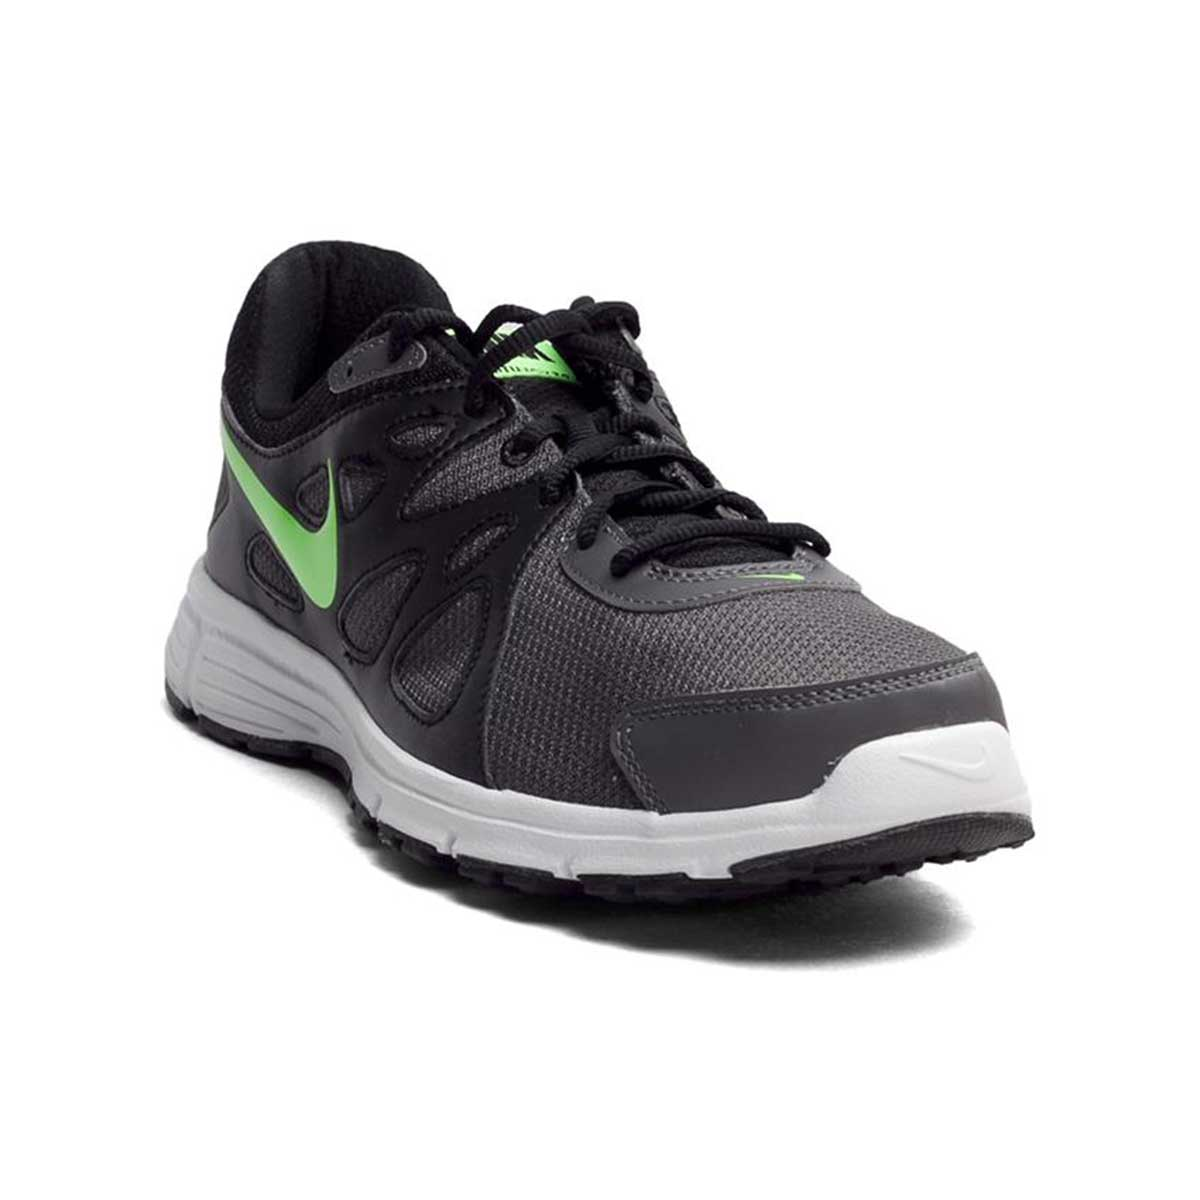 d5c92f808e5 Buy Nike Revolution 2 Running Shoes (Black Grey Green) Online